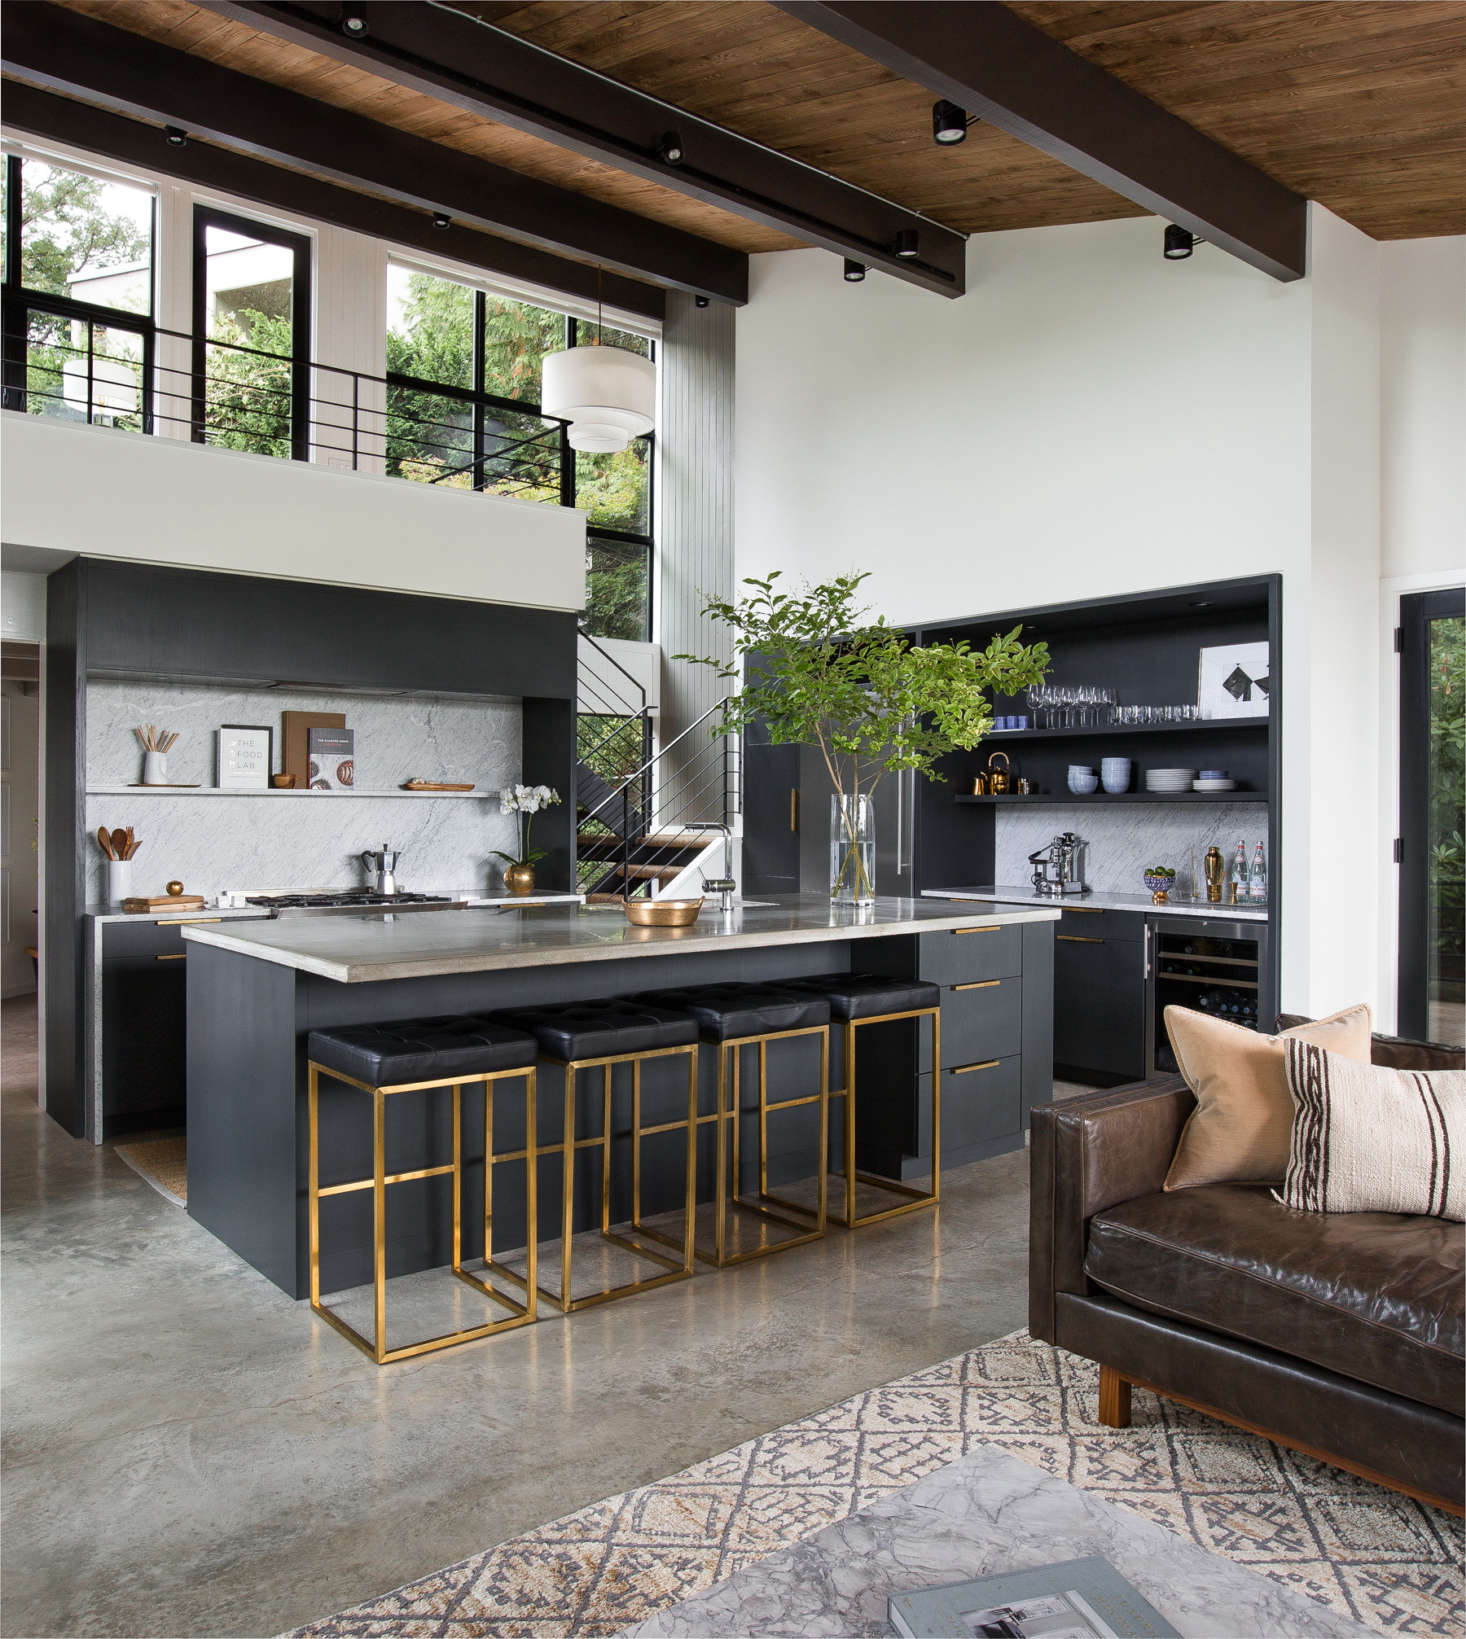 Second Home Decorating Ideas: Best Professional Kitchen: Montlake Residence By Mowery